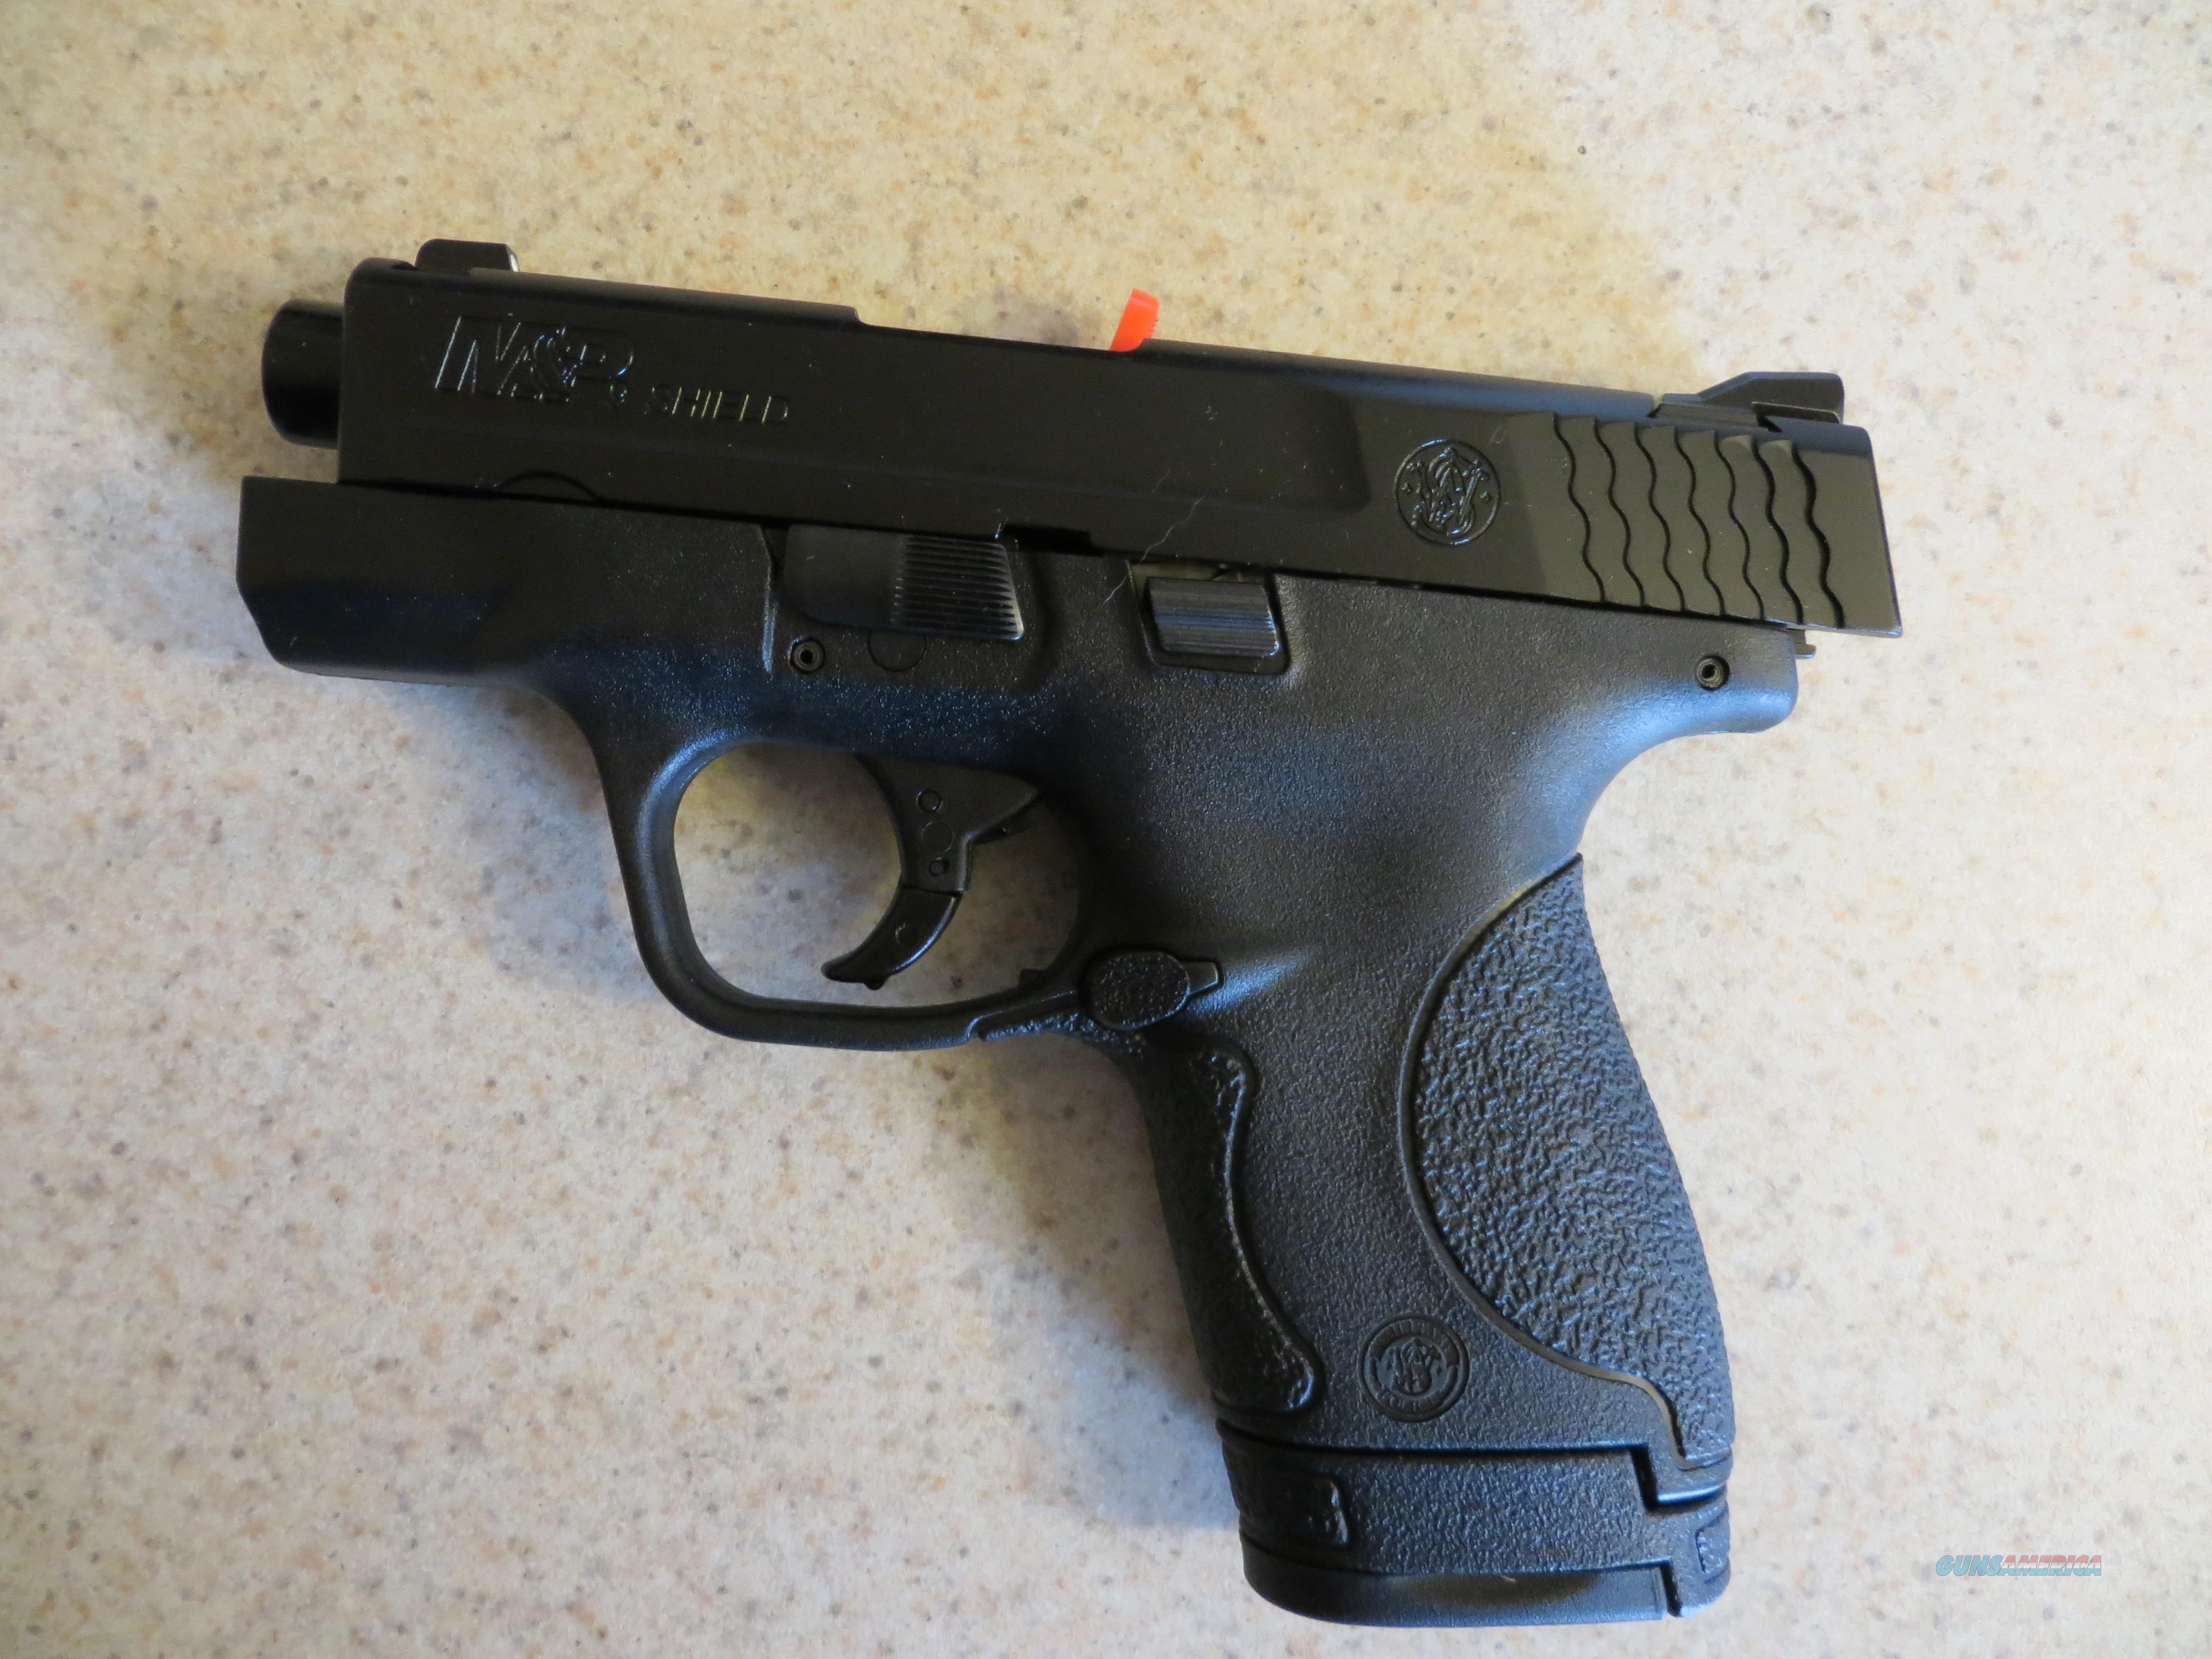 Smith & Wesson M&P 9 Shield 9mm #10035 NIB  Guns > Pistols > Smith & Wesson Pistols - Autos > Polymer Frame